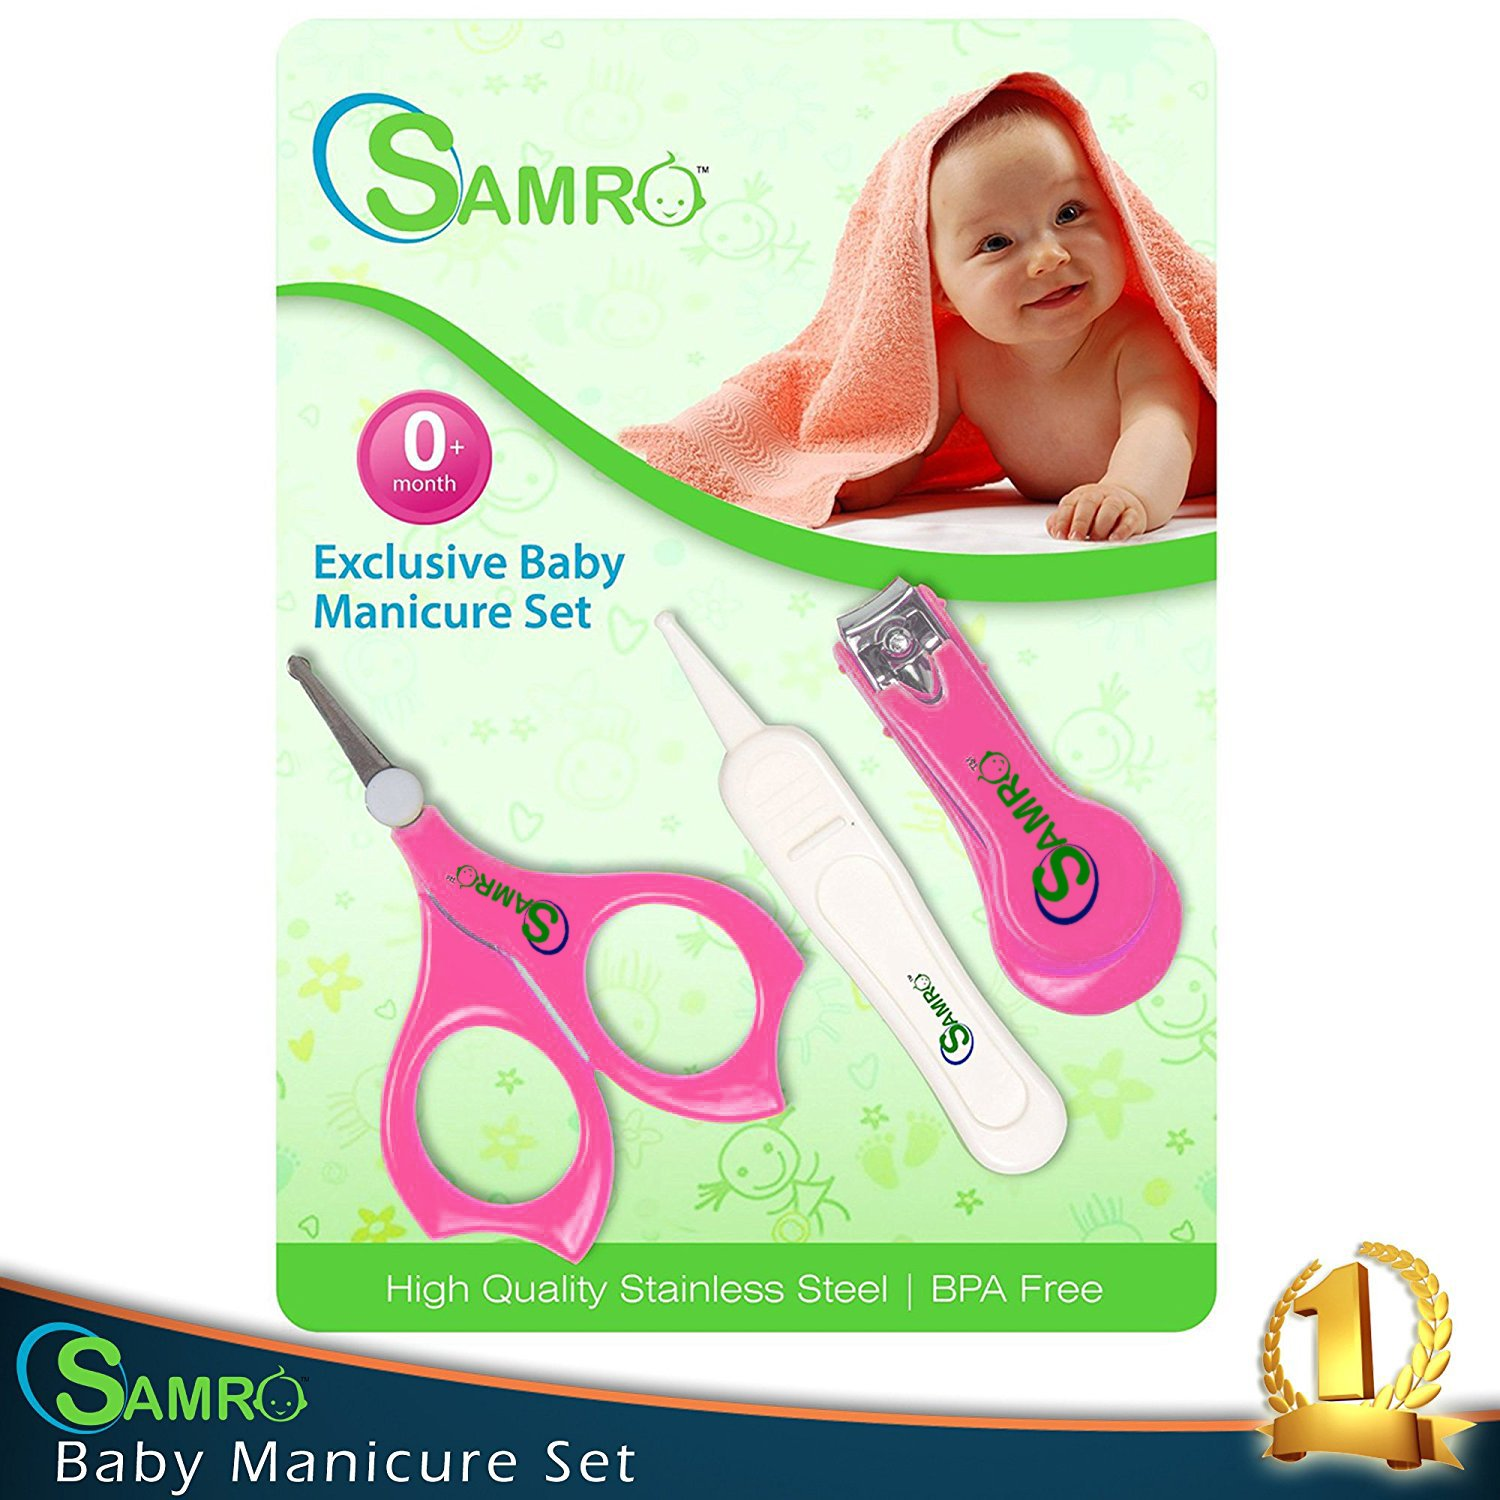 SAMRO Baby Nail Clippers Set with Scissors and Nasal Tweezer in the USA Simple Ergonomic Versatile Unisex Child Toddler Grooming & Healthcare Kit and Shower Gift (Pink)